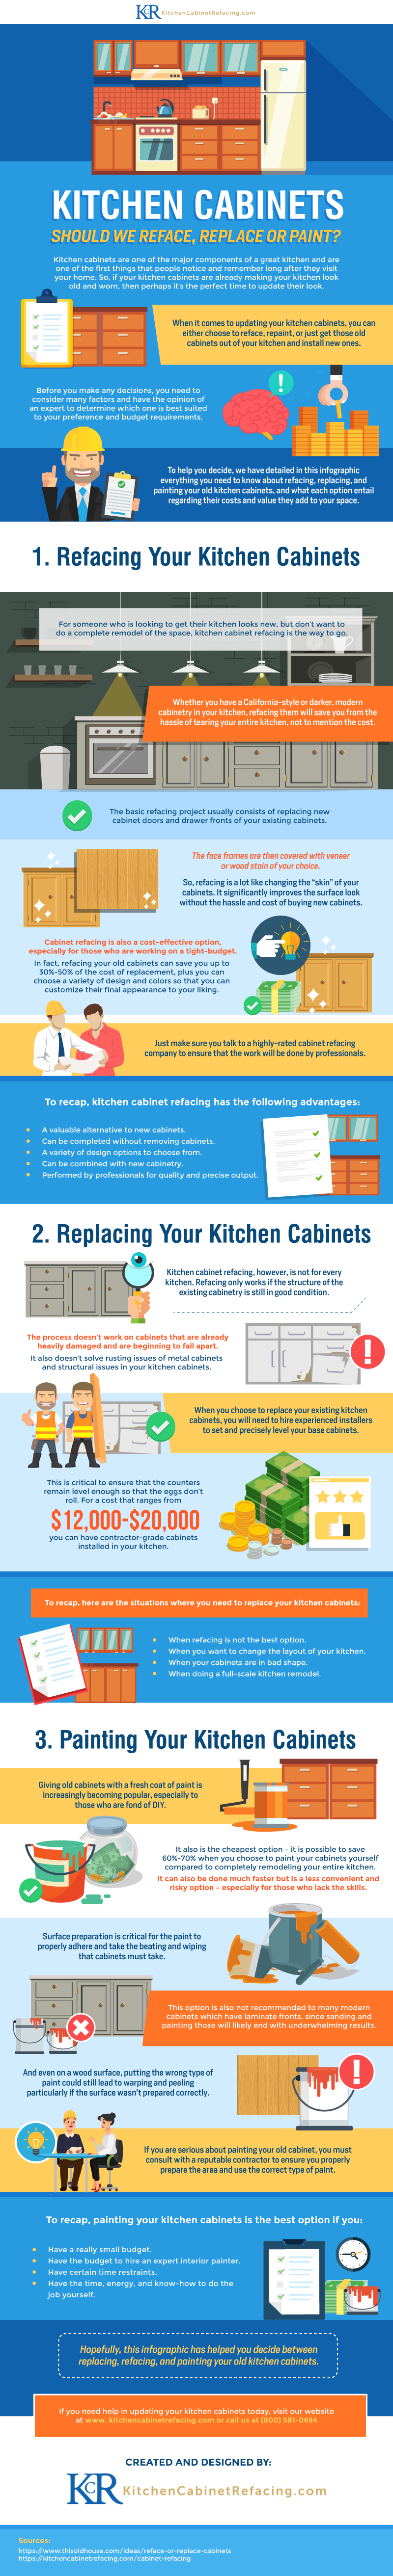 Learn More About The Pros And Cons Of Refacing, Replacing, And Repainting  Your Kitchen Cabinets By Checking Out This Infographic From Kitchen Cabinet  ...